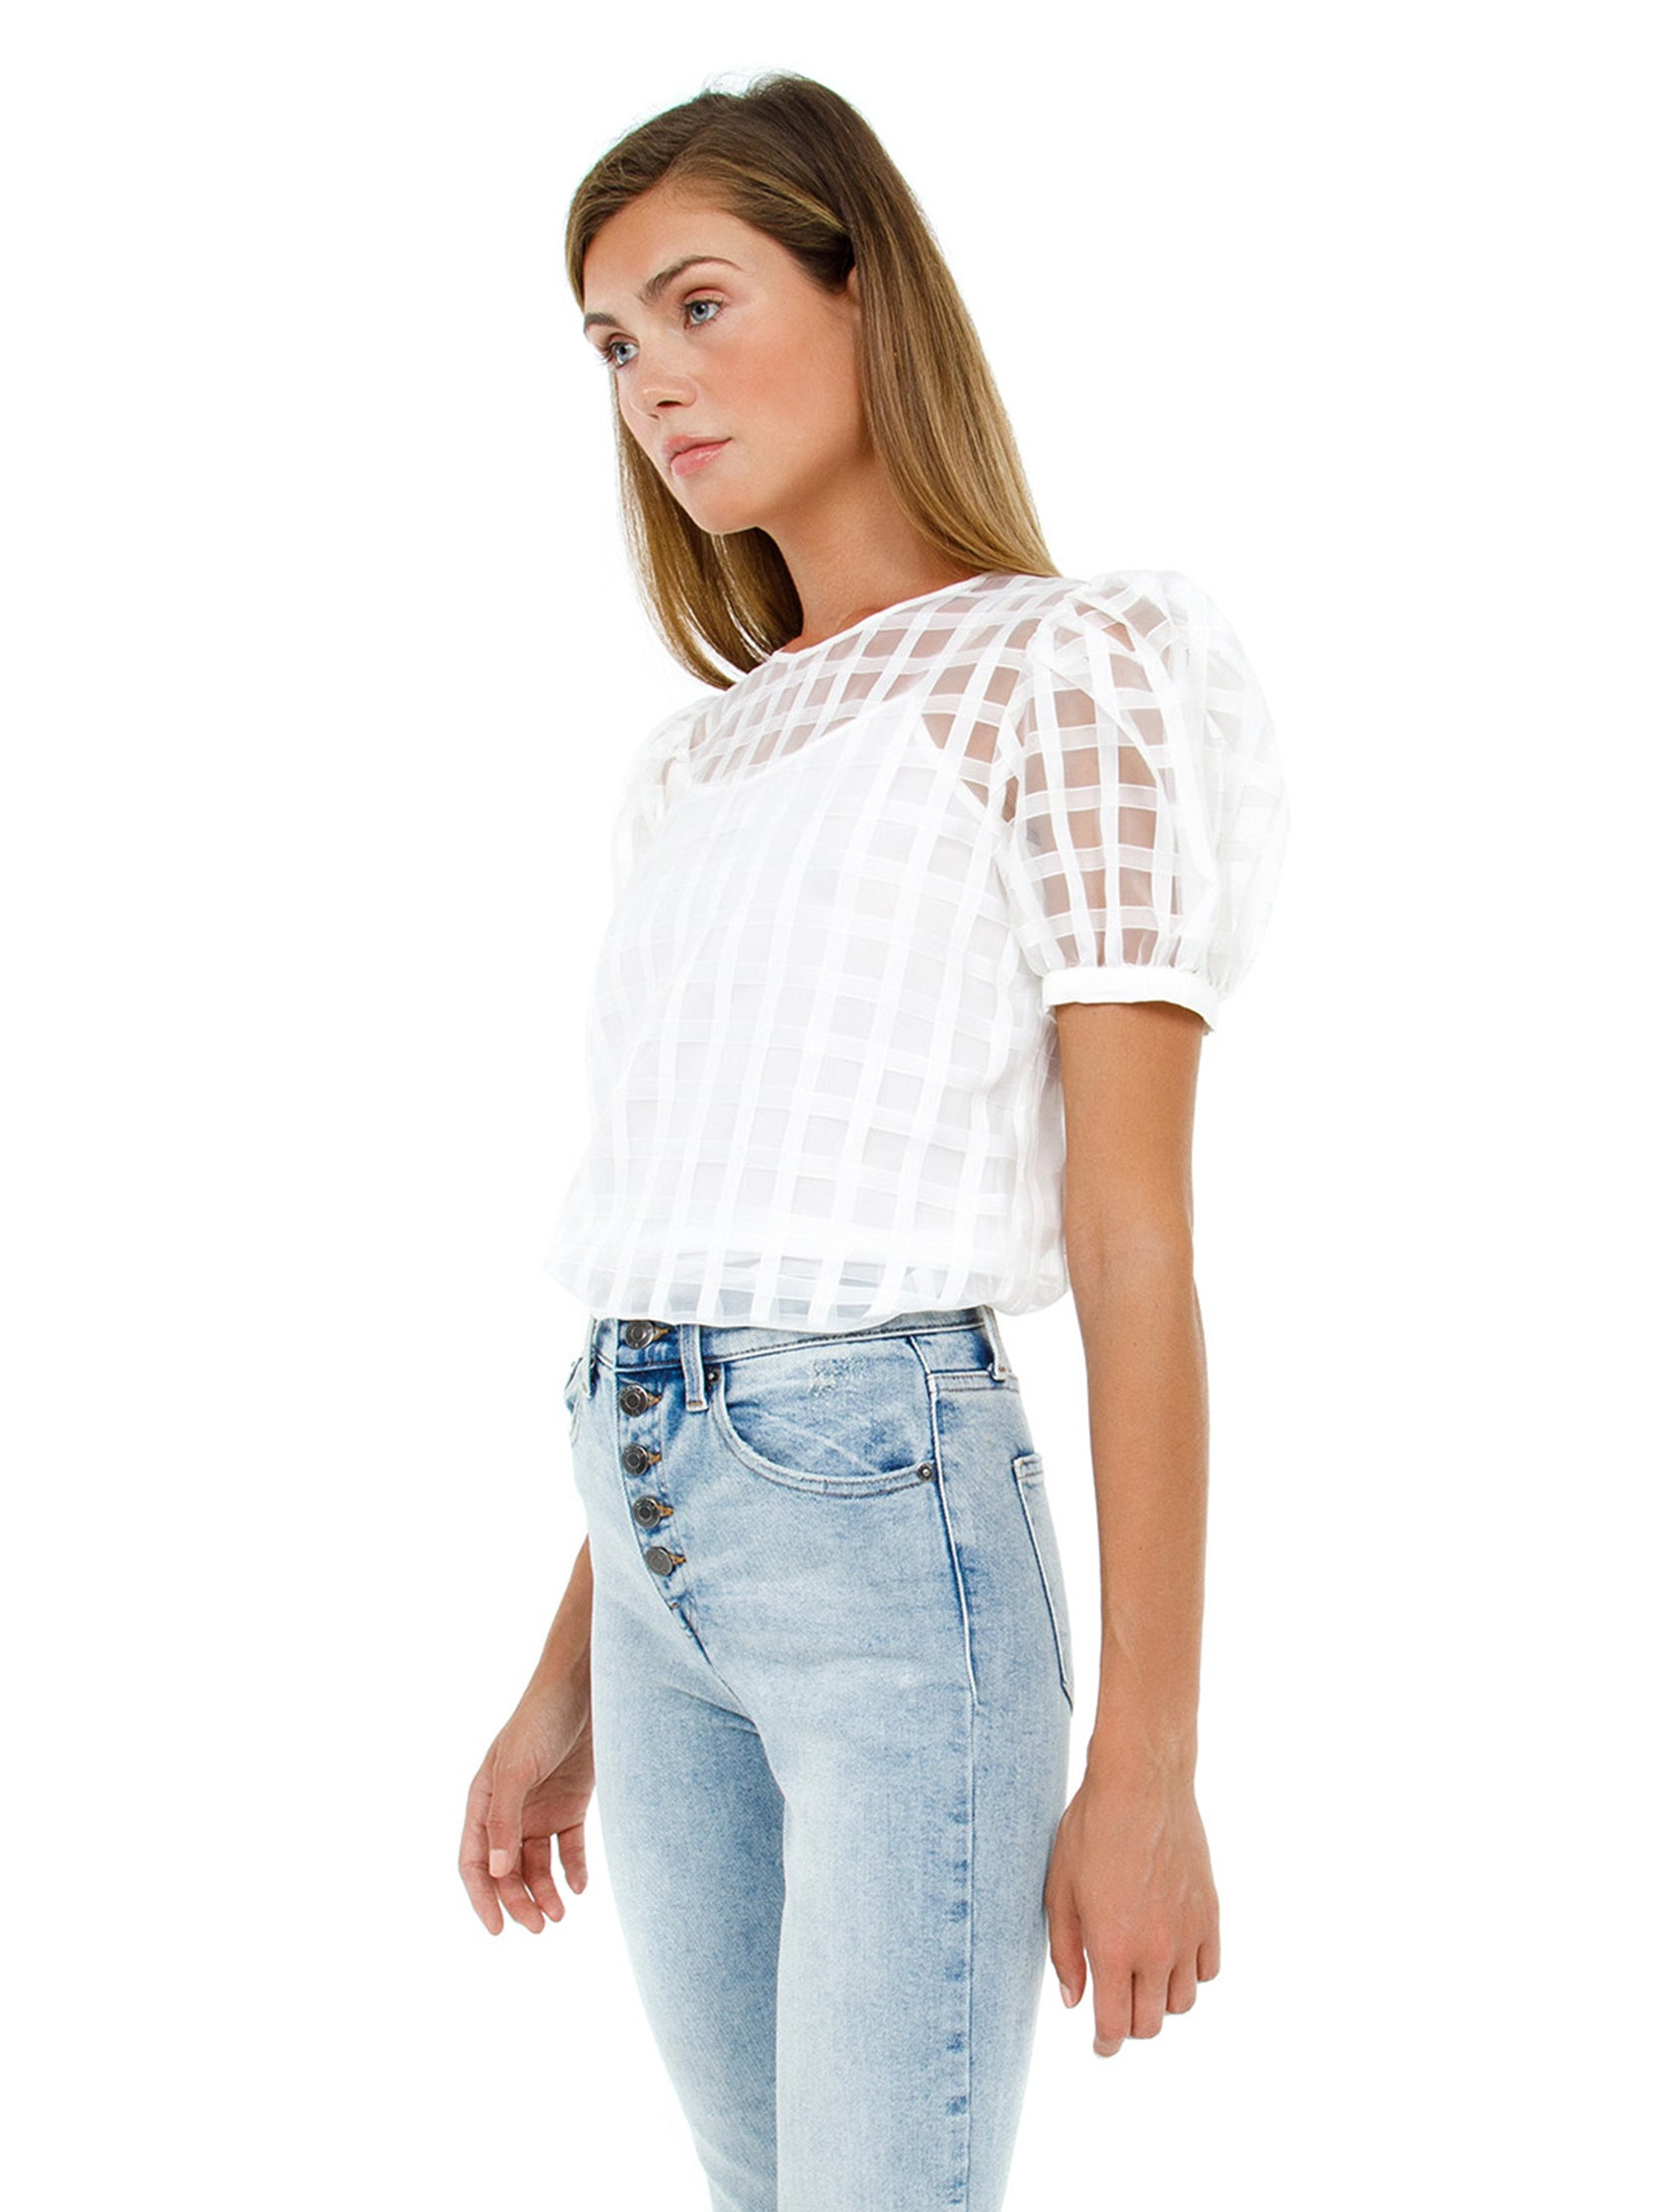 Women wearing a top rental from English Factory called Plaid See Through Top